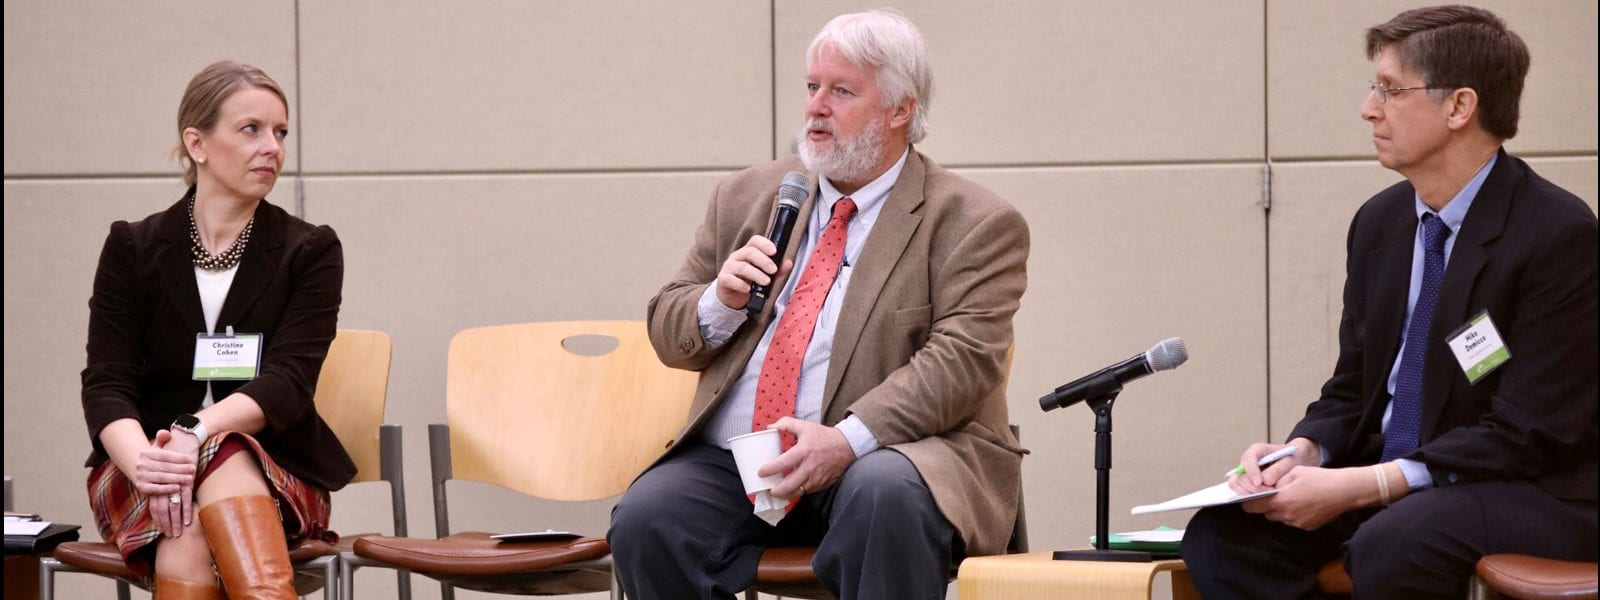 SEN. Miner Discusses State's Business Climate, Conservation and Energy Innovation at CBIA Event